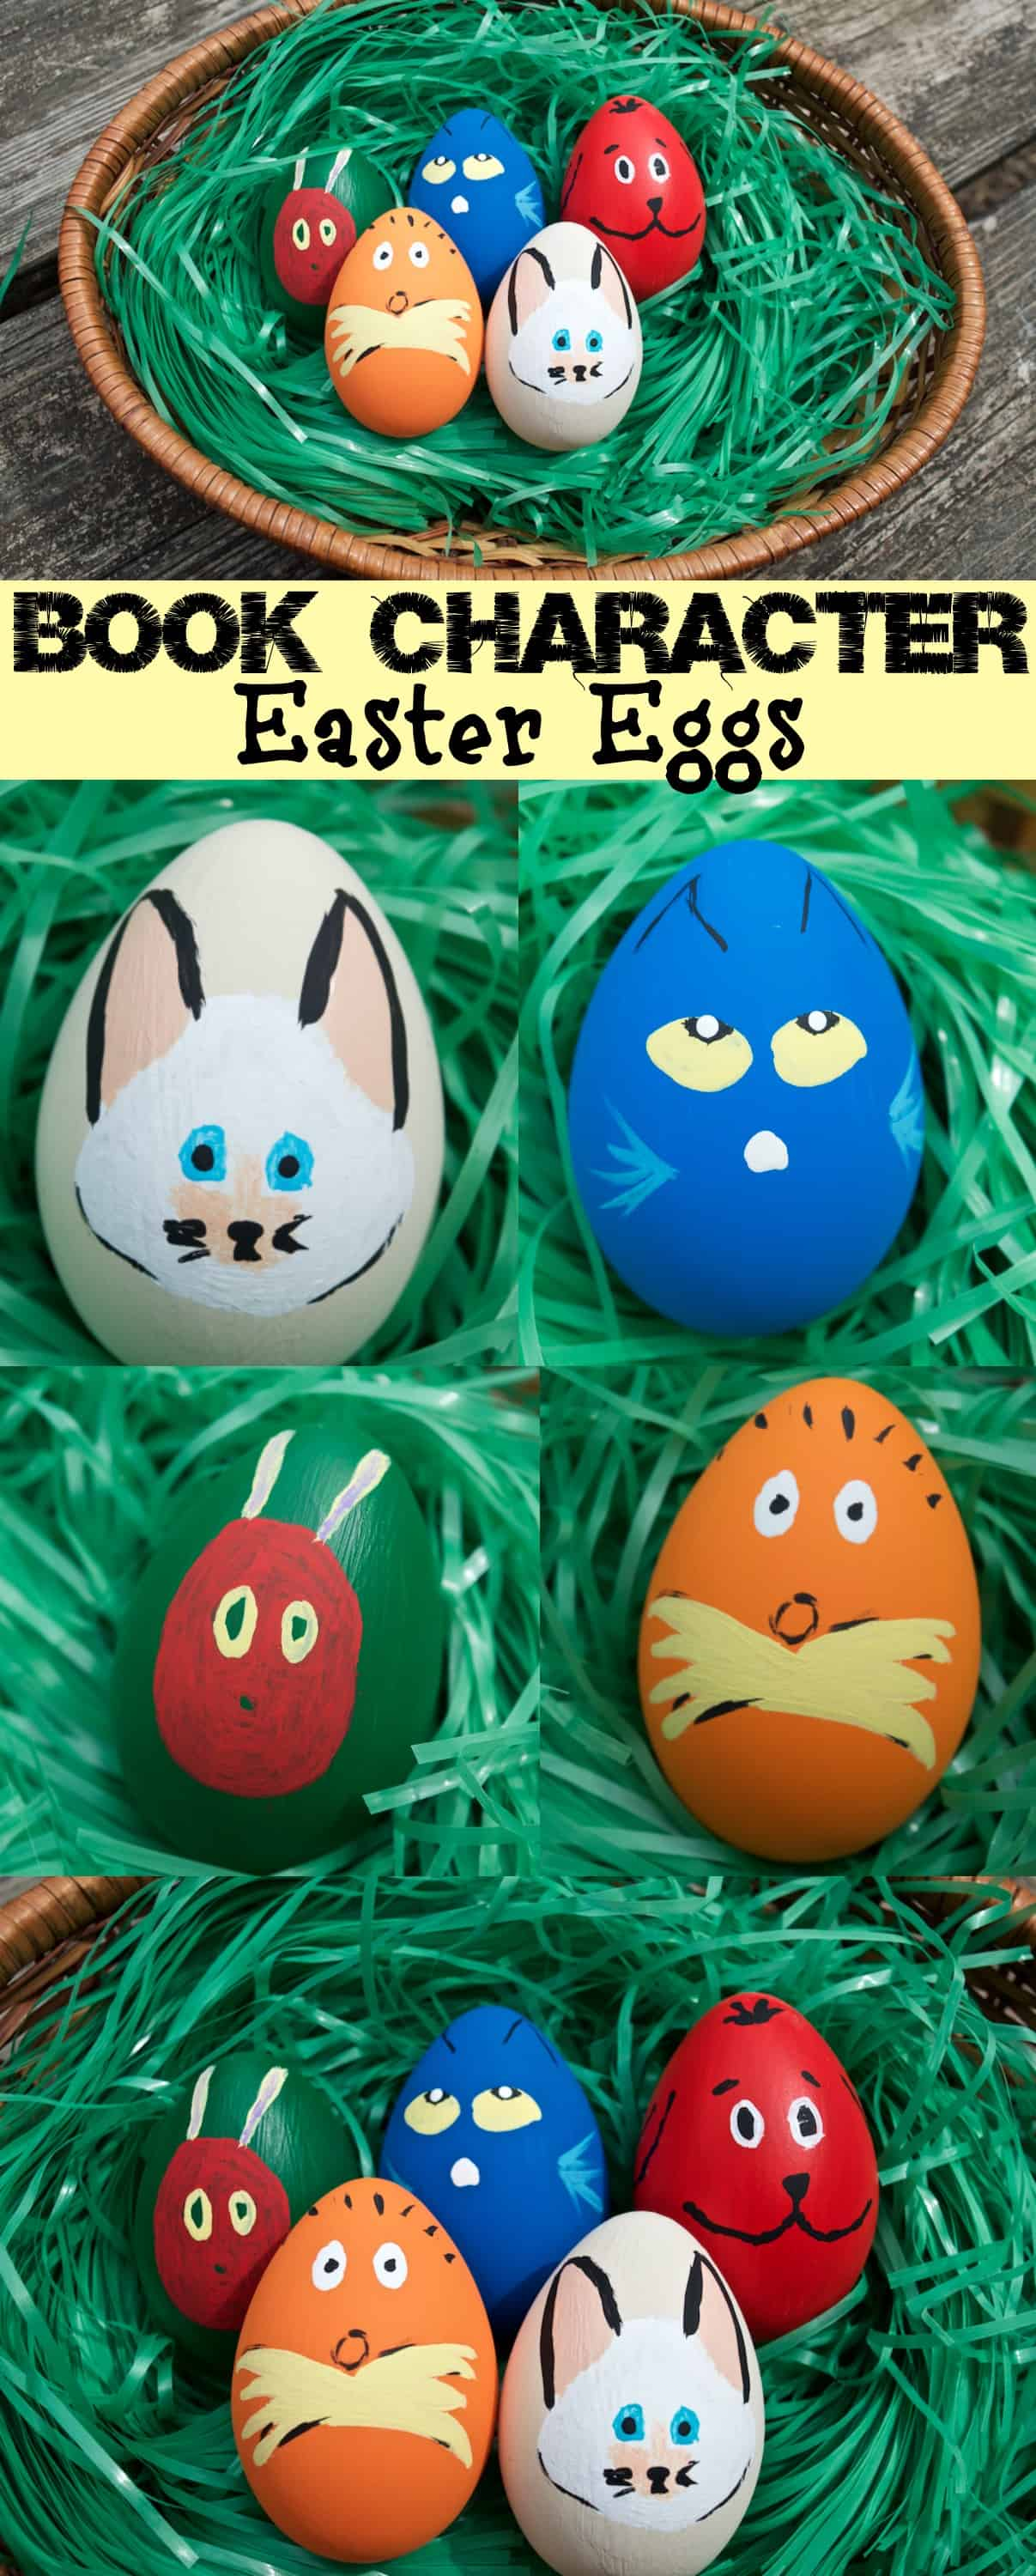 Cute Children 39 s Book Character Easter Egg Decor